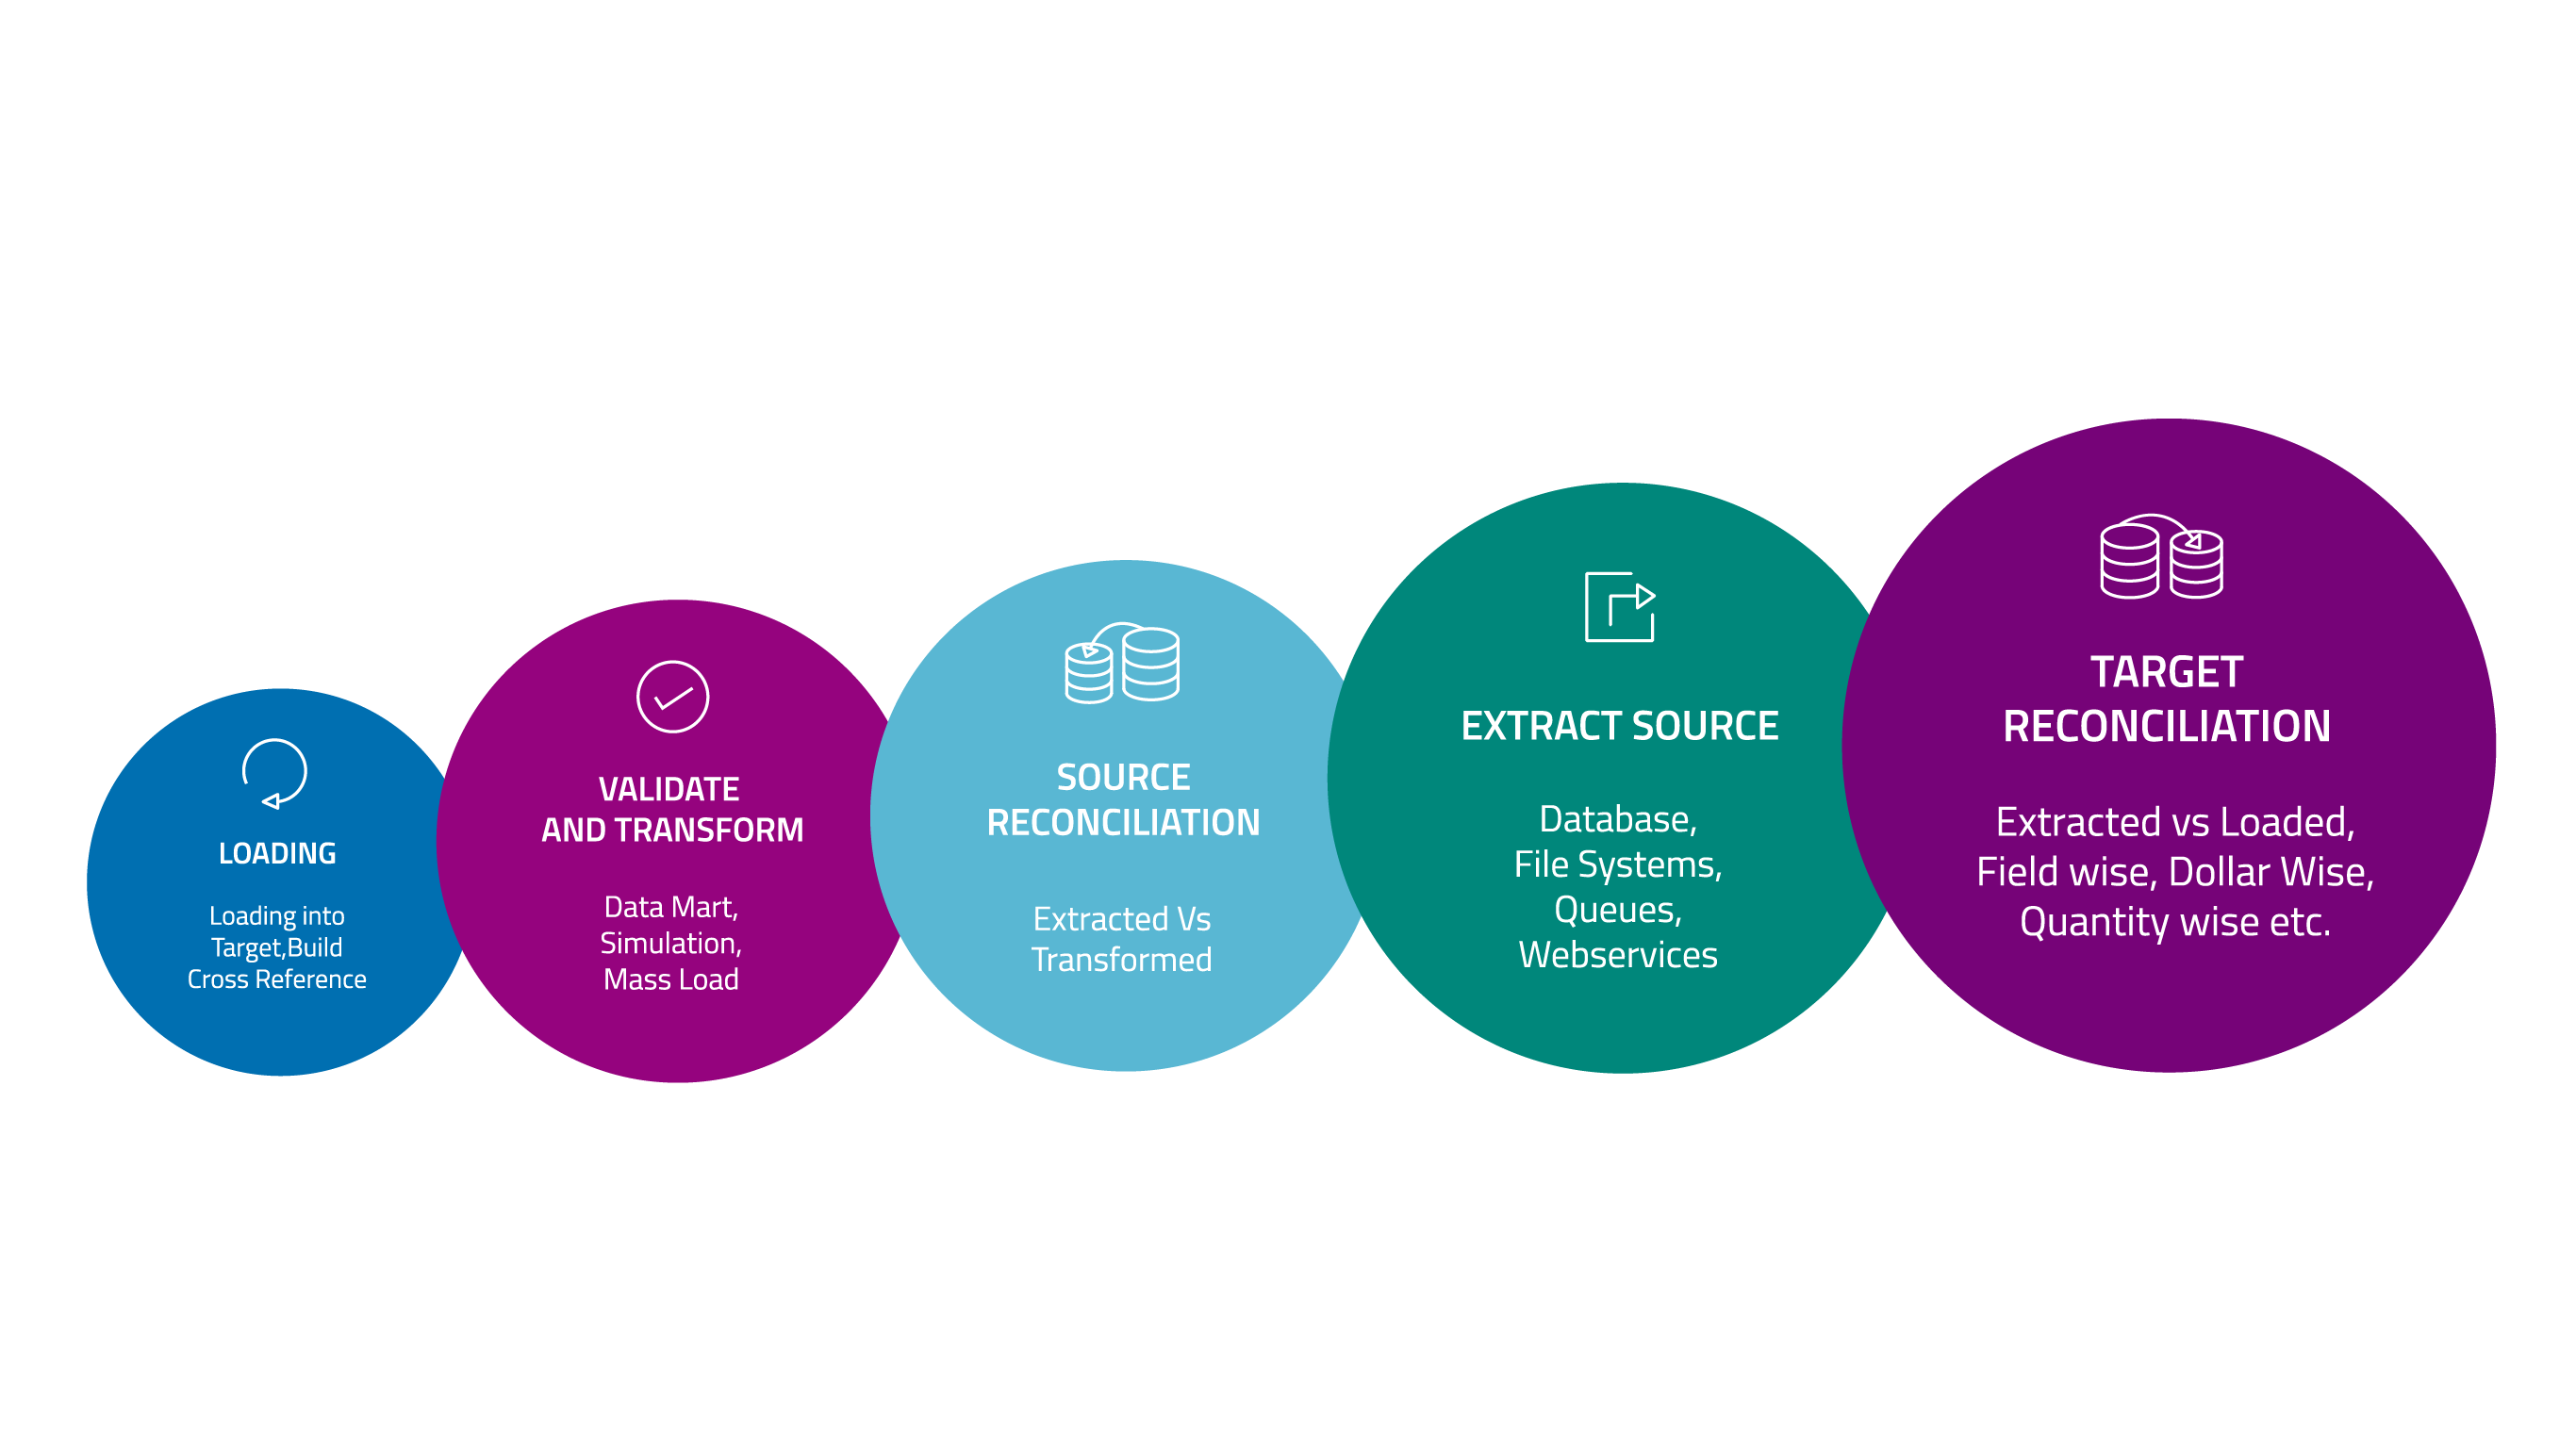 End to End Data Reconciliation Solution